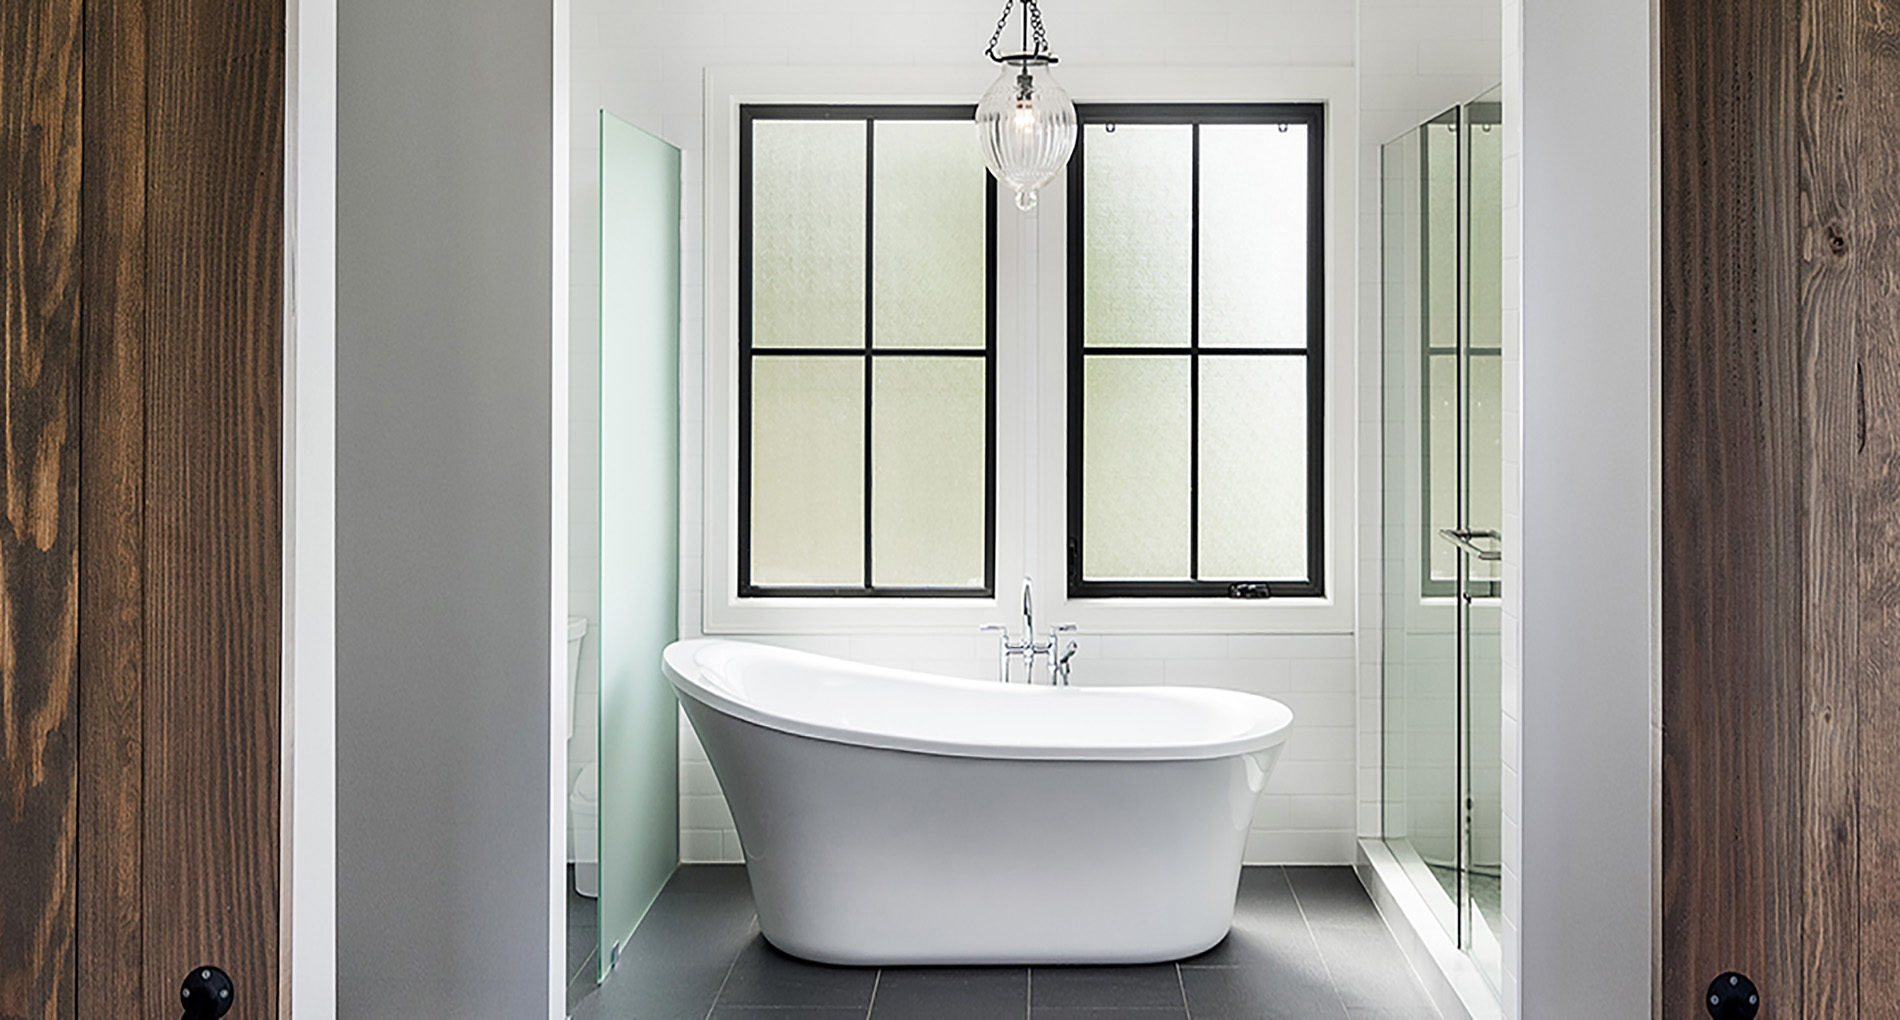 Bathroom Renovations & Design in Langley | Alair Homes Langley